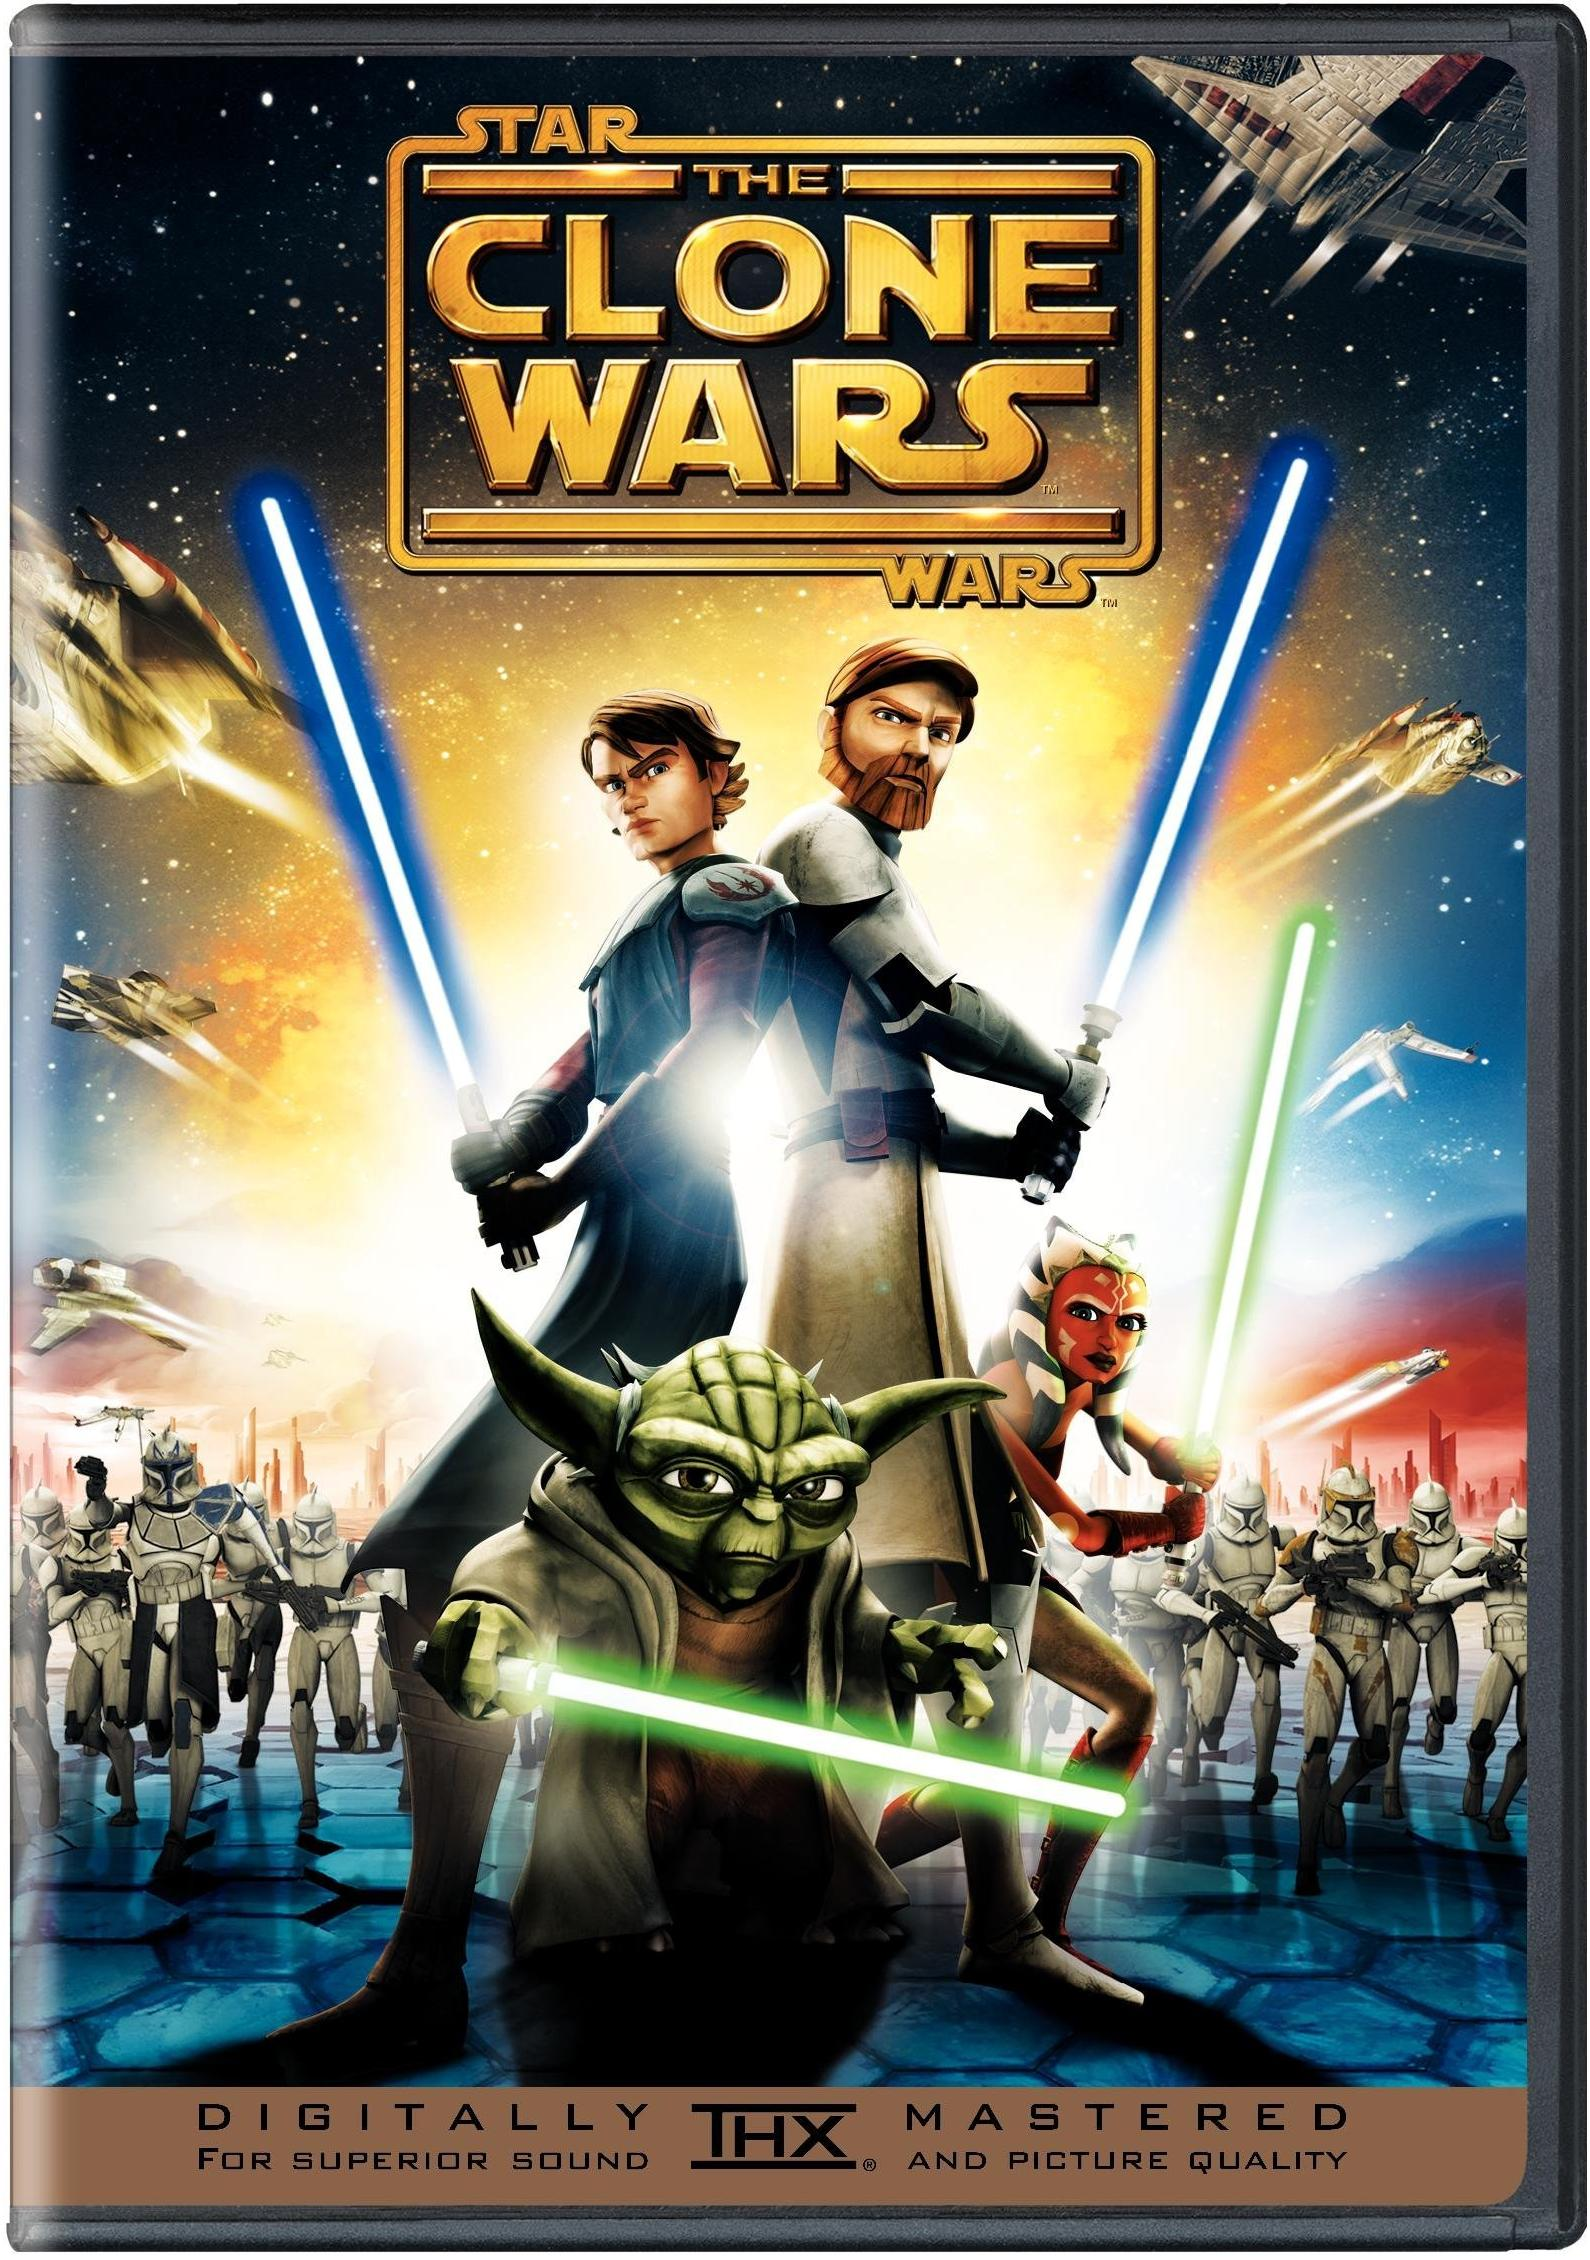 Star Wars: The Clone Wars Unfinished Business S.7.E.8